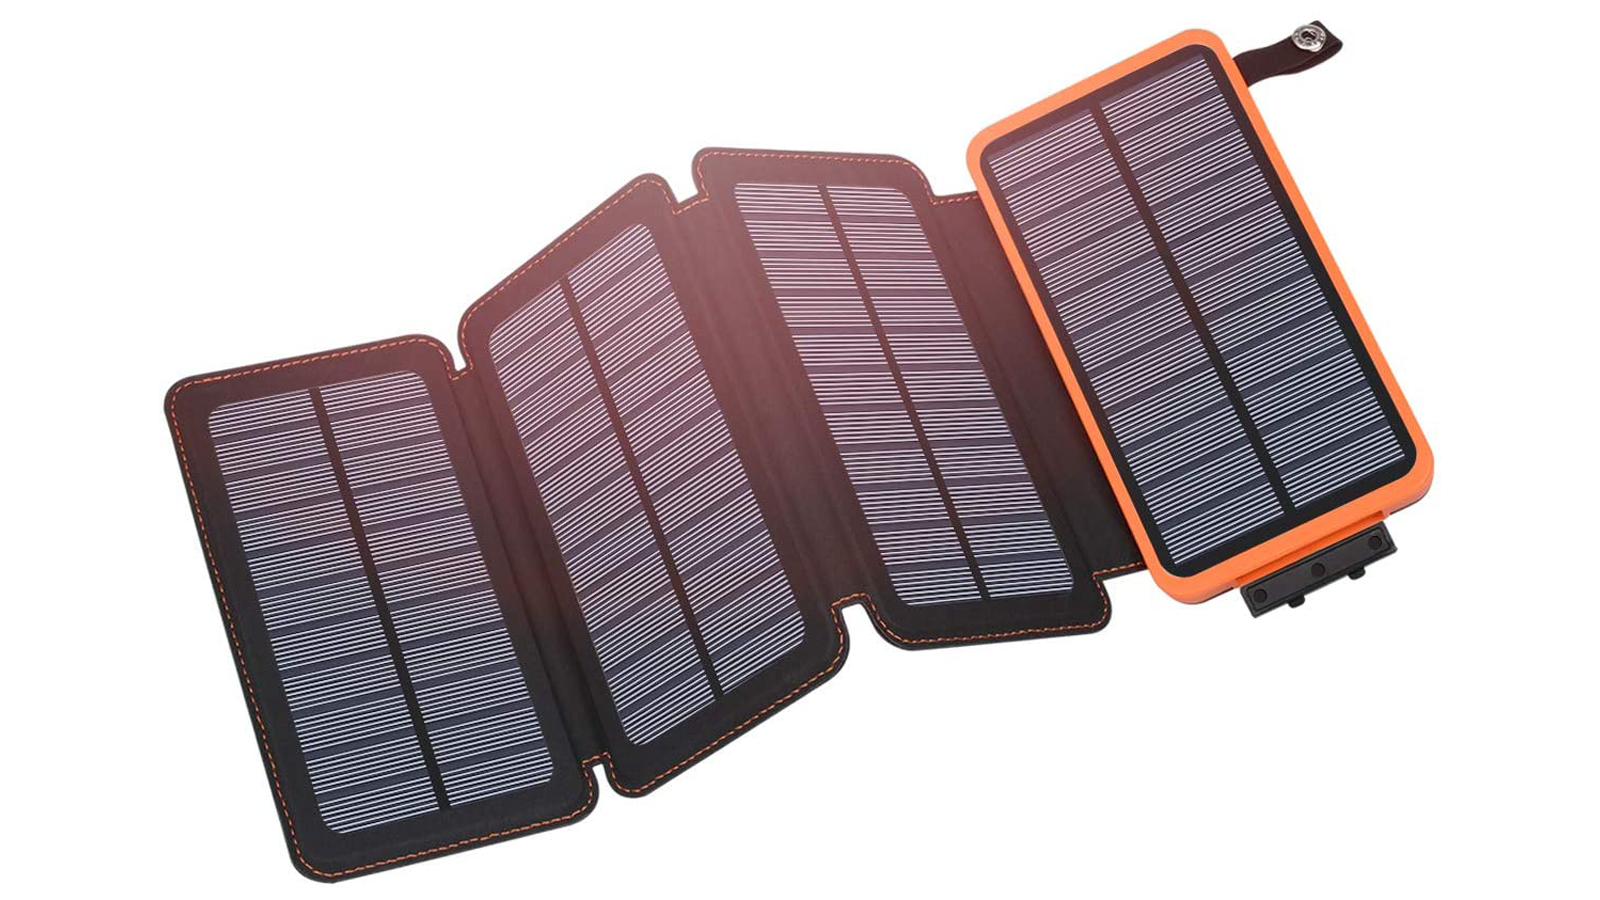 Keep a Sunny Outlook with This Solar Power Bank